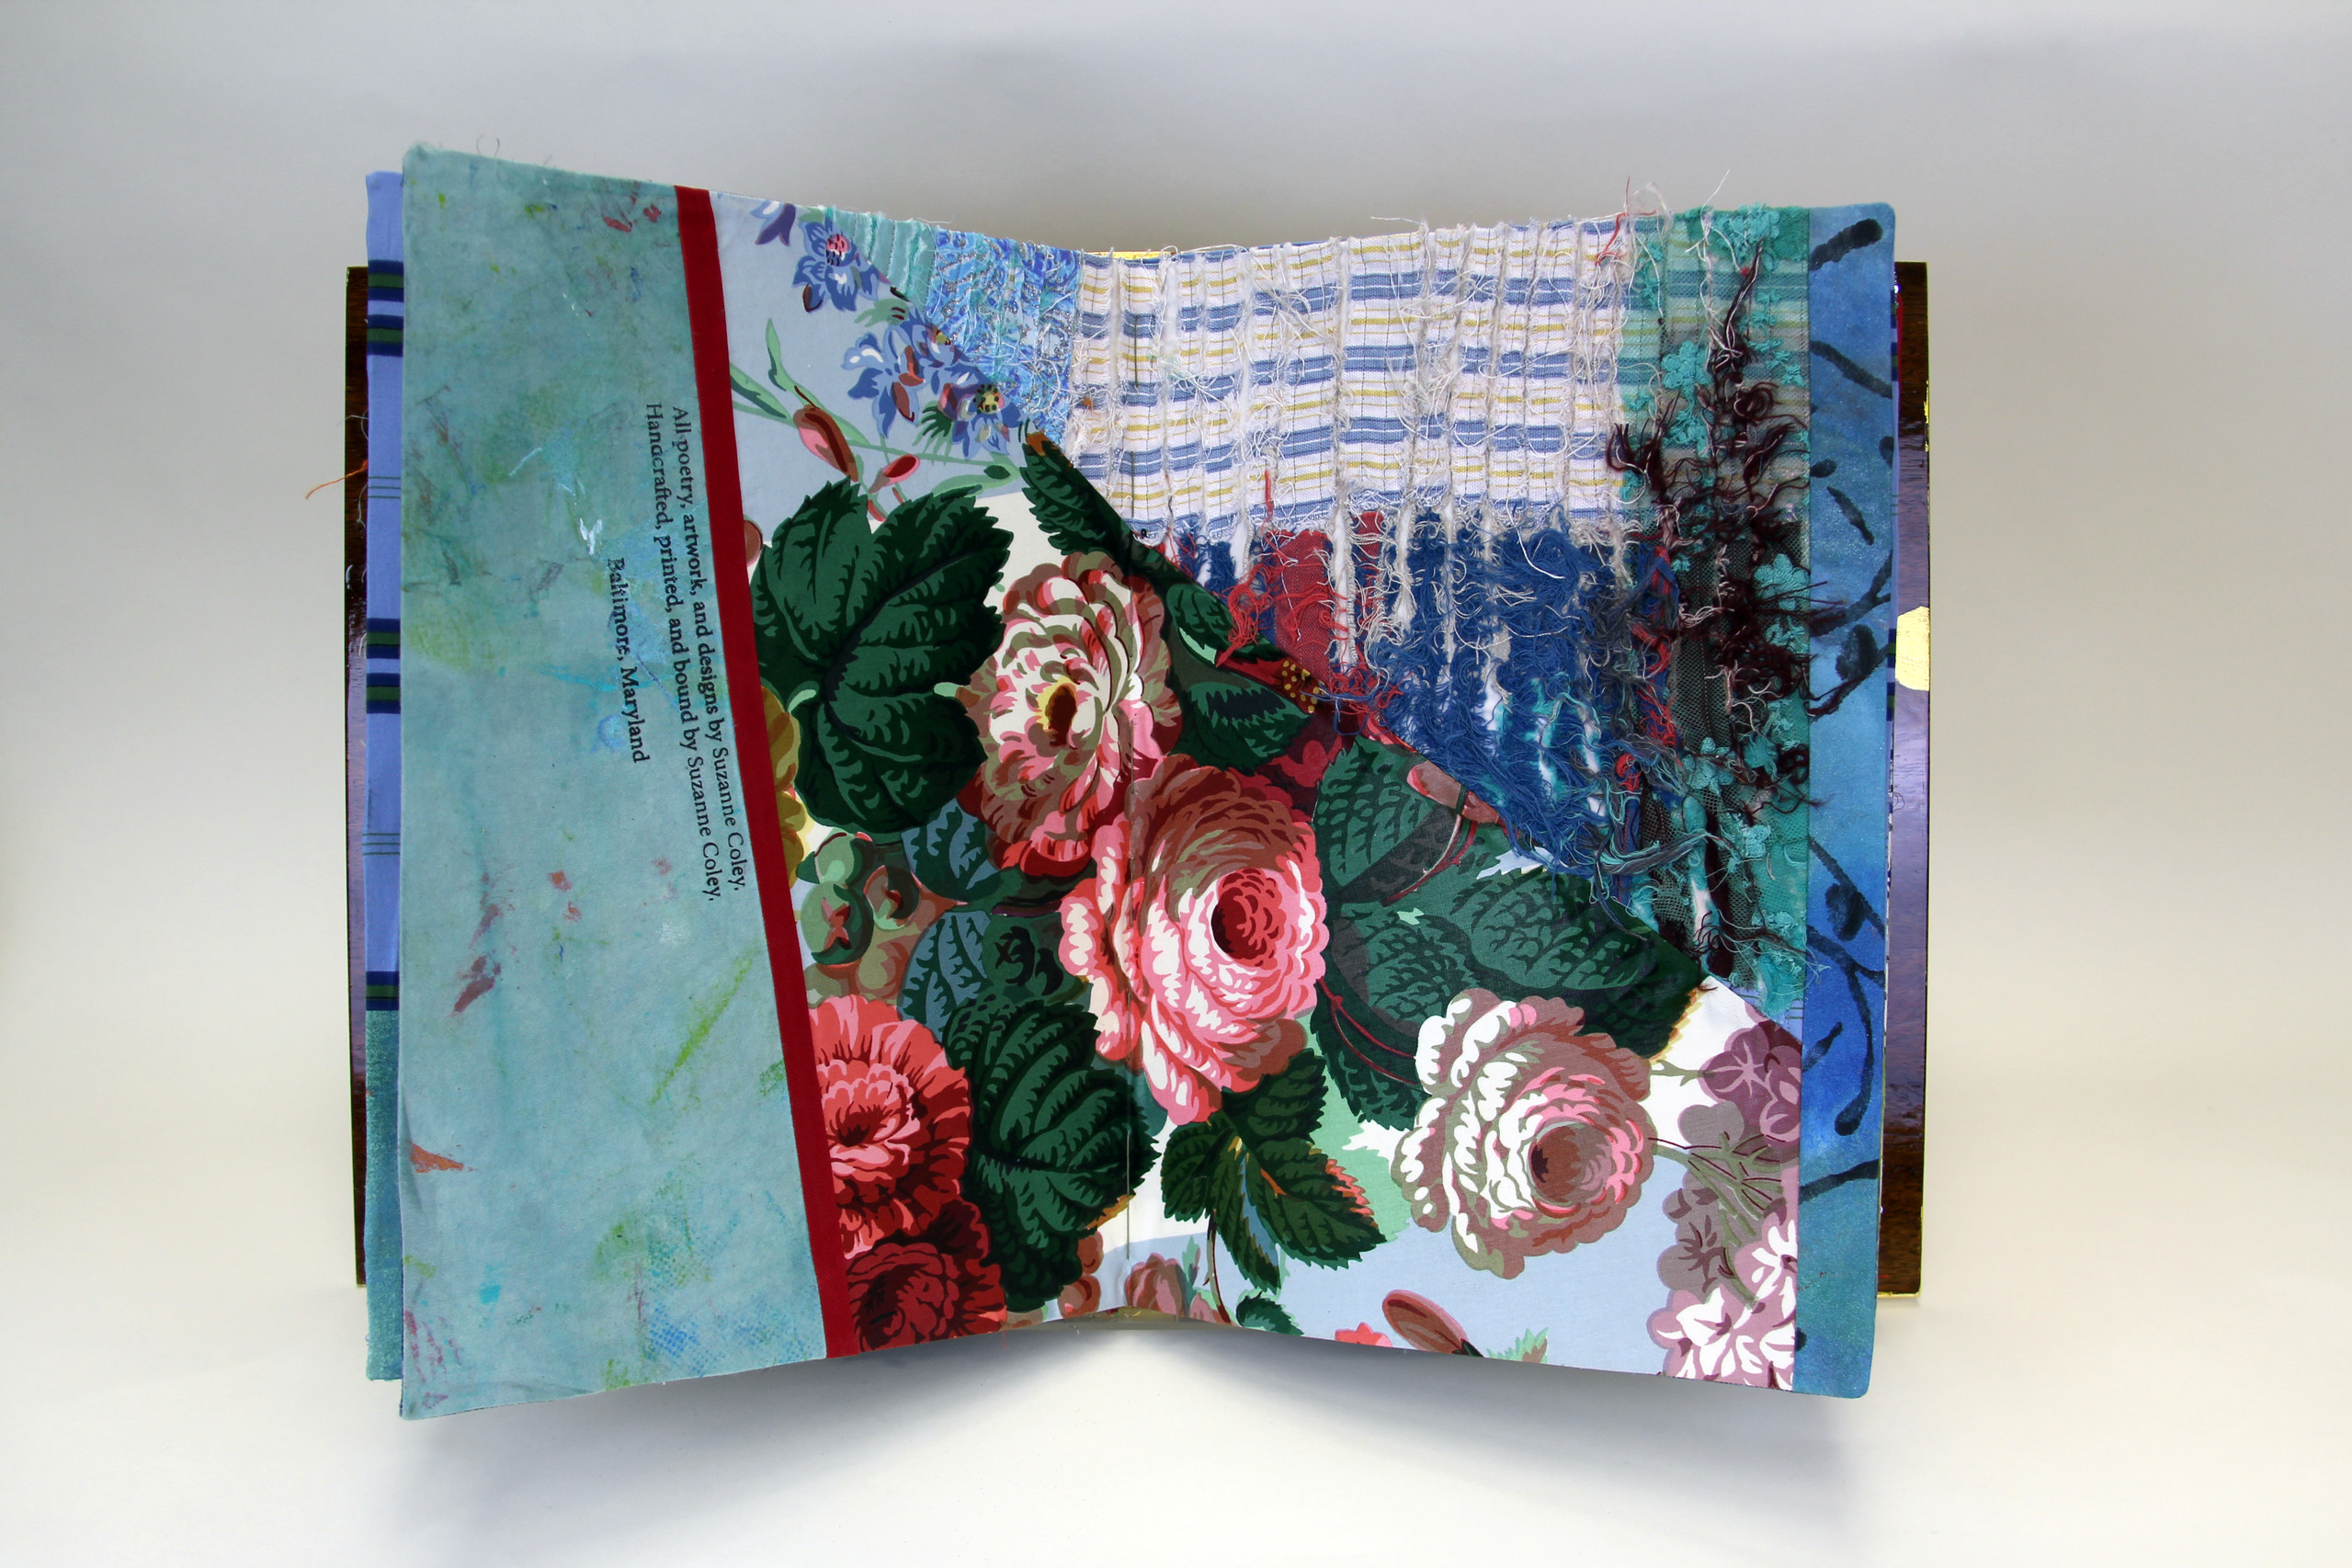 A book made from colorful print fabrics collaged and stitched together is laid flat and open to a spread that features a vibrant floral print.